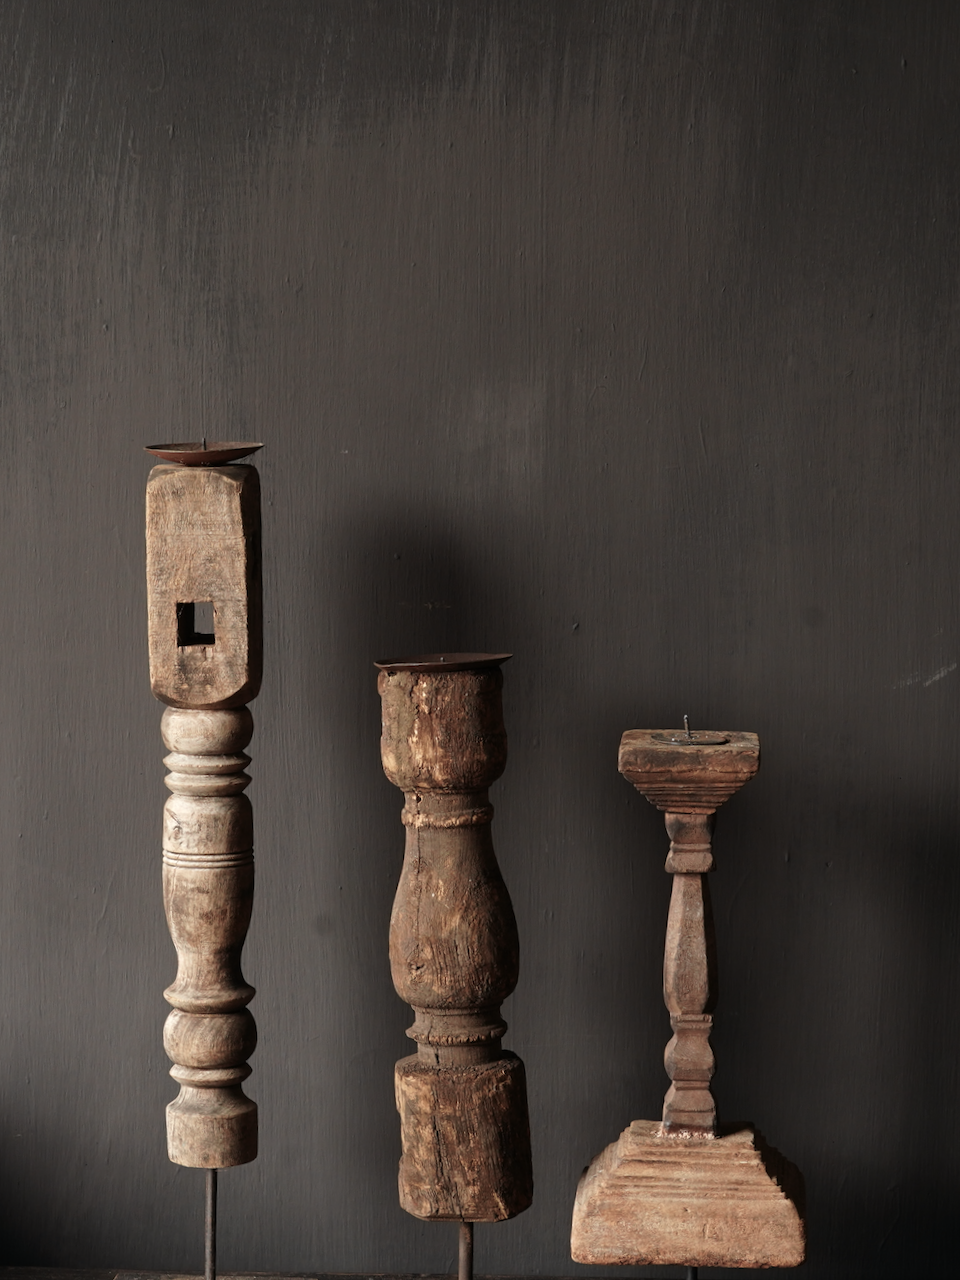 Wooden Nepalese candlestick made of old ornament-3